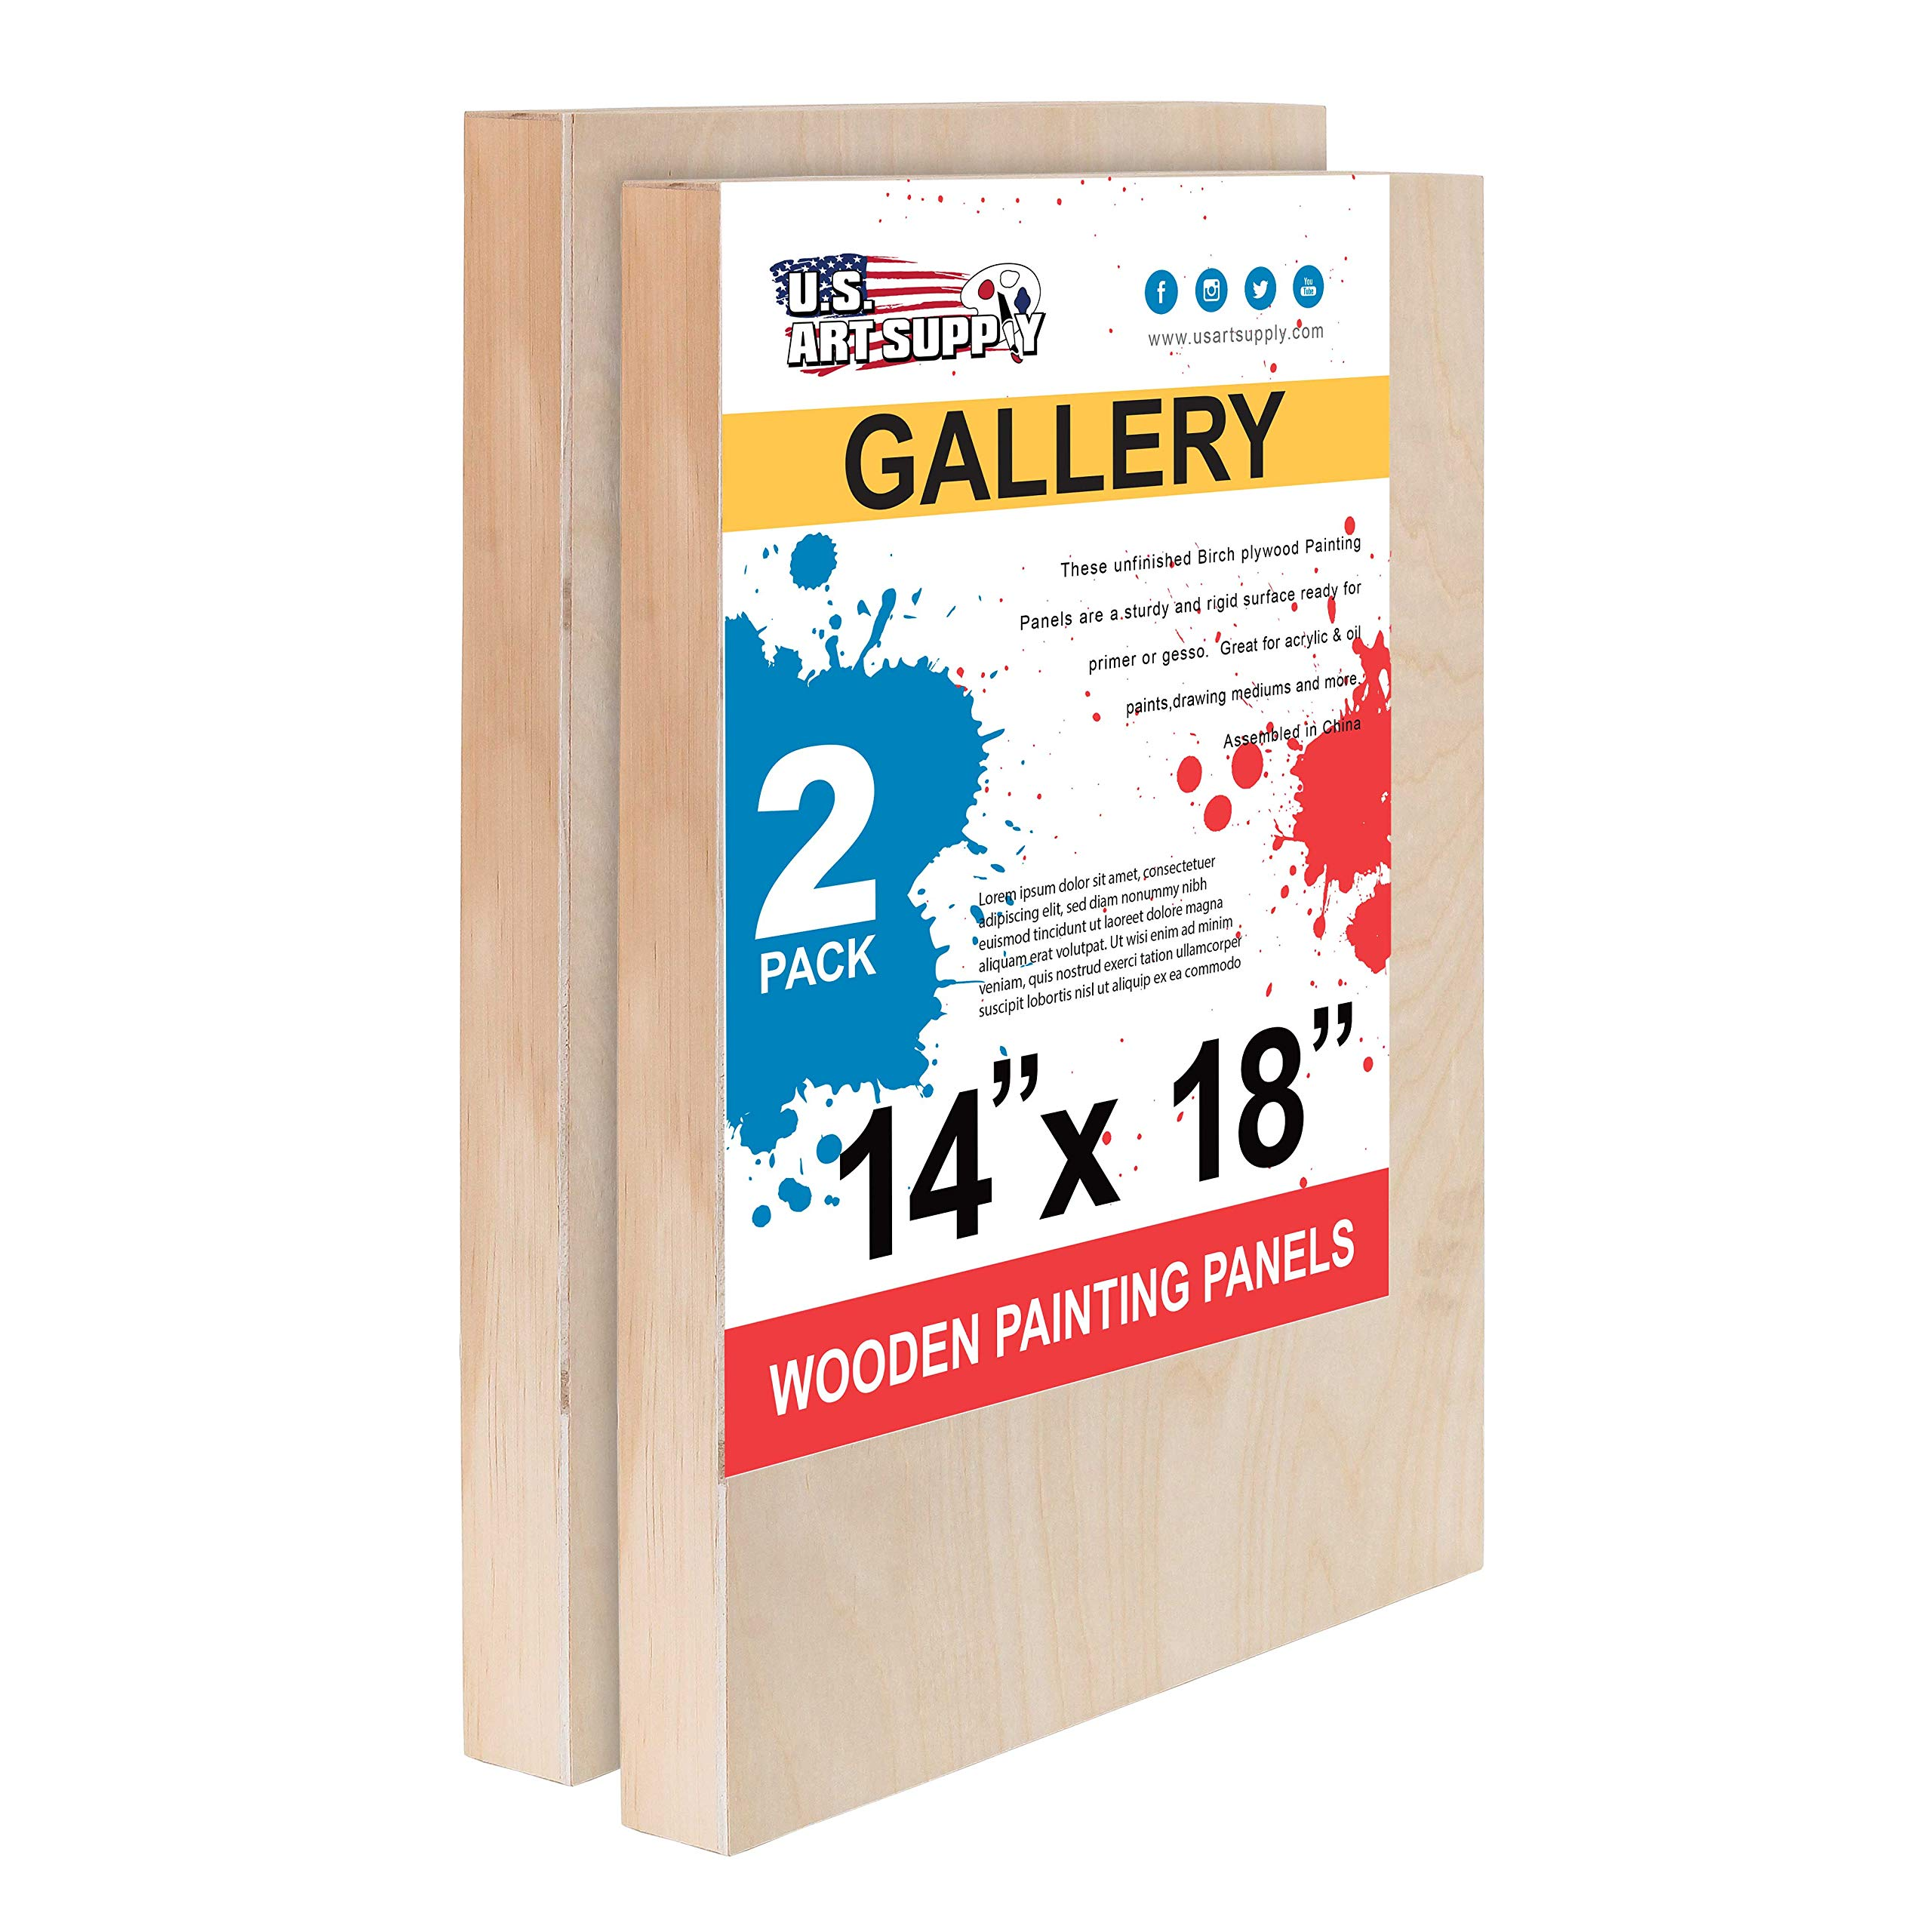 U.S. Art Supply 14'' x 18'' Birch Wood Paint Pouring Panel Boards, Gallery 1-1/2'' Deep Cradle (Pack of 2) - Artist Depth Wooden Wall Canvases - Painting Mixed-Media Craft, Acrylic, Oil, Encaustic by U.S. Art Supply